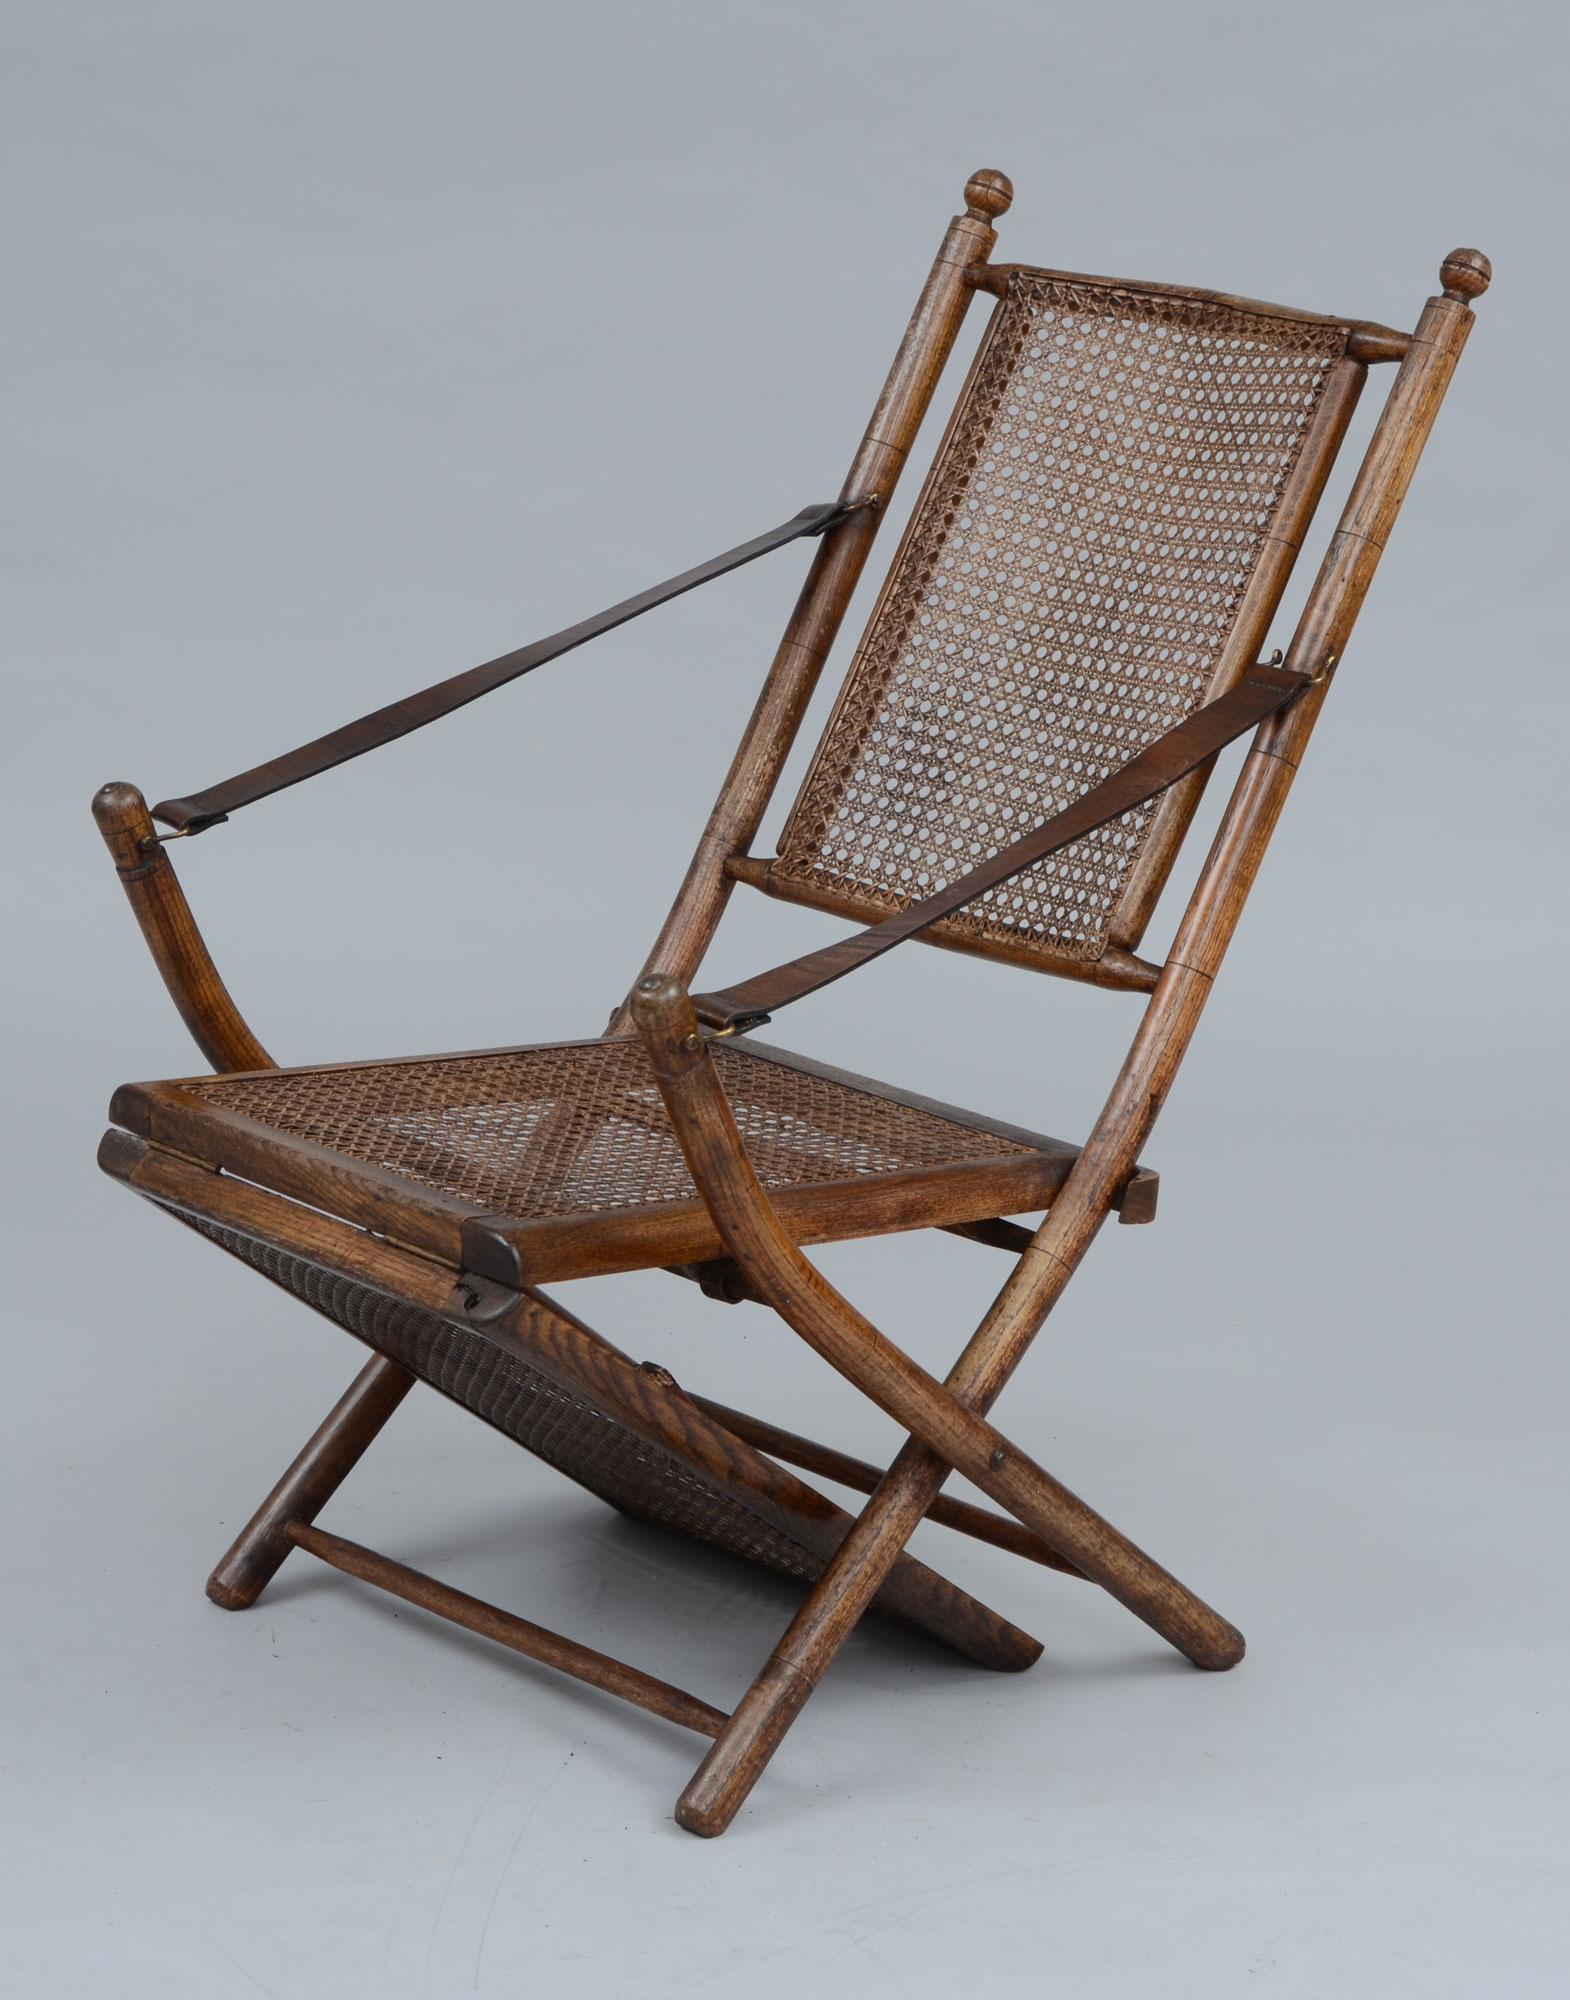 ... 1920's Antique Oak Caned Deck Chair, ... - Antique Deck Chairs Folding Oak Caned Antique Deck Chair